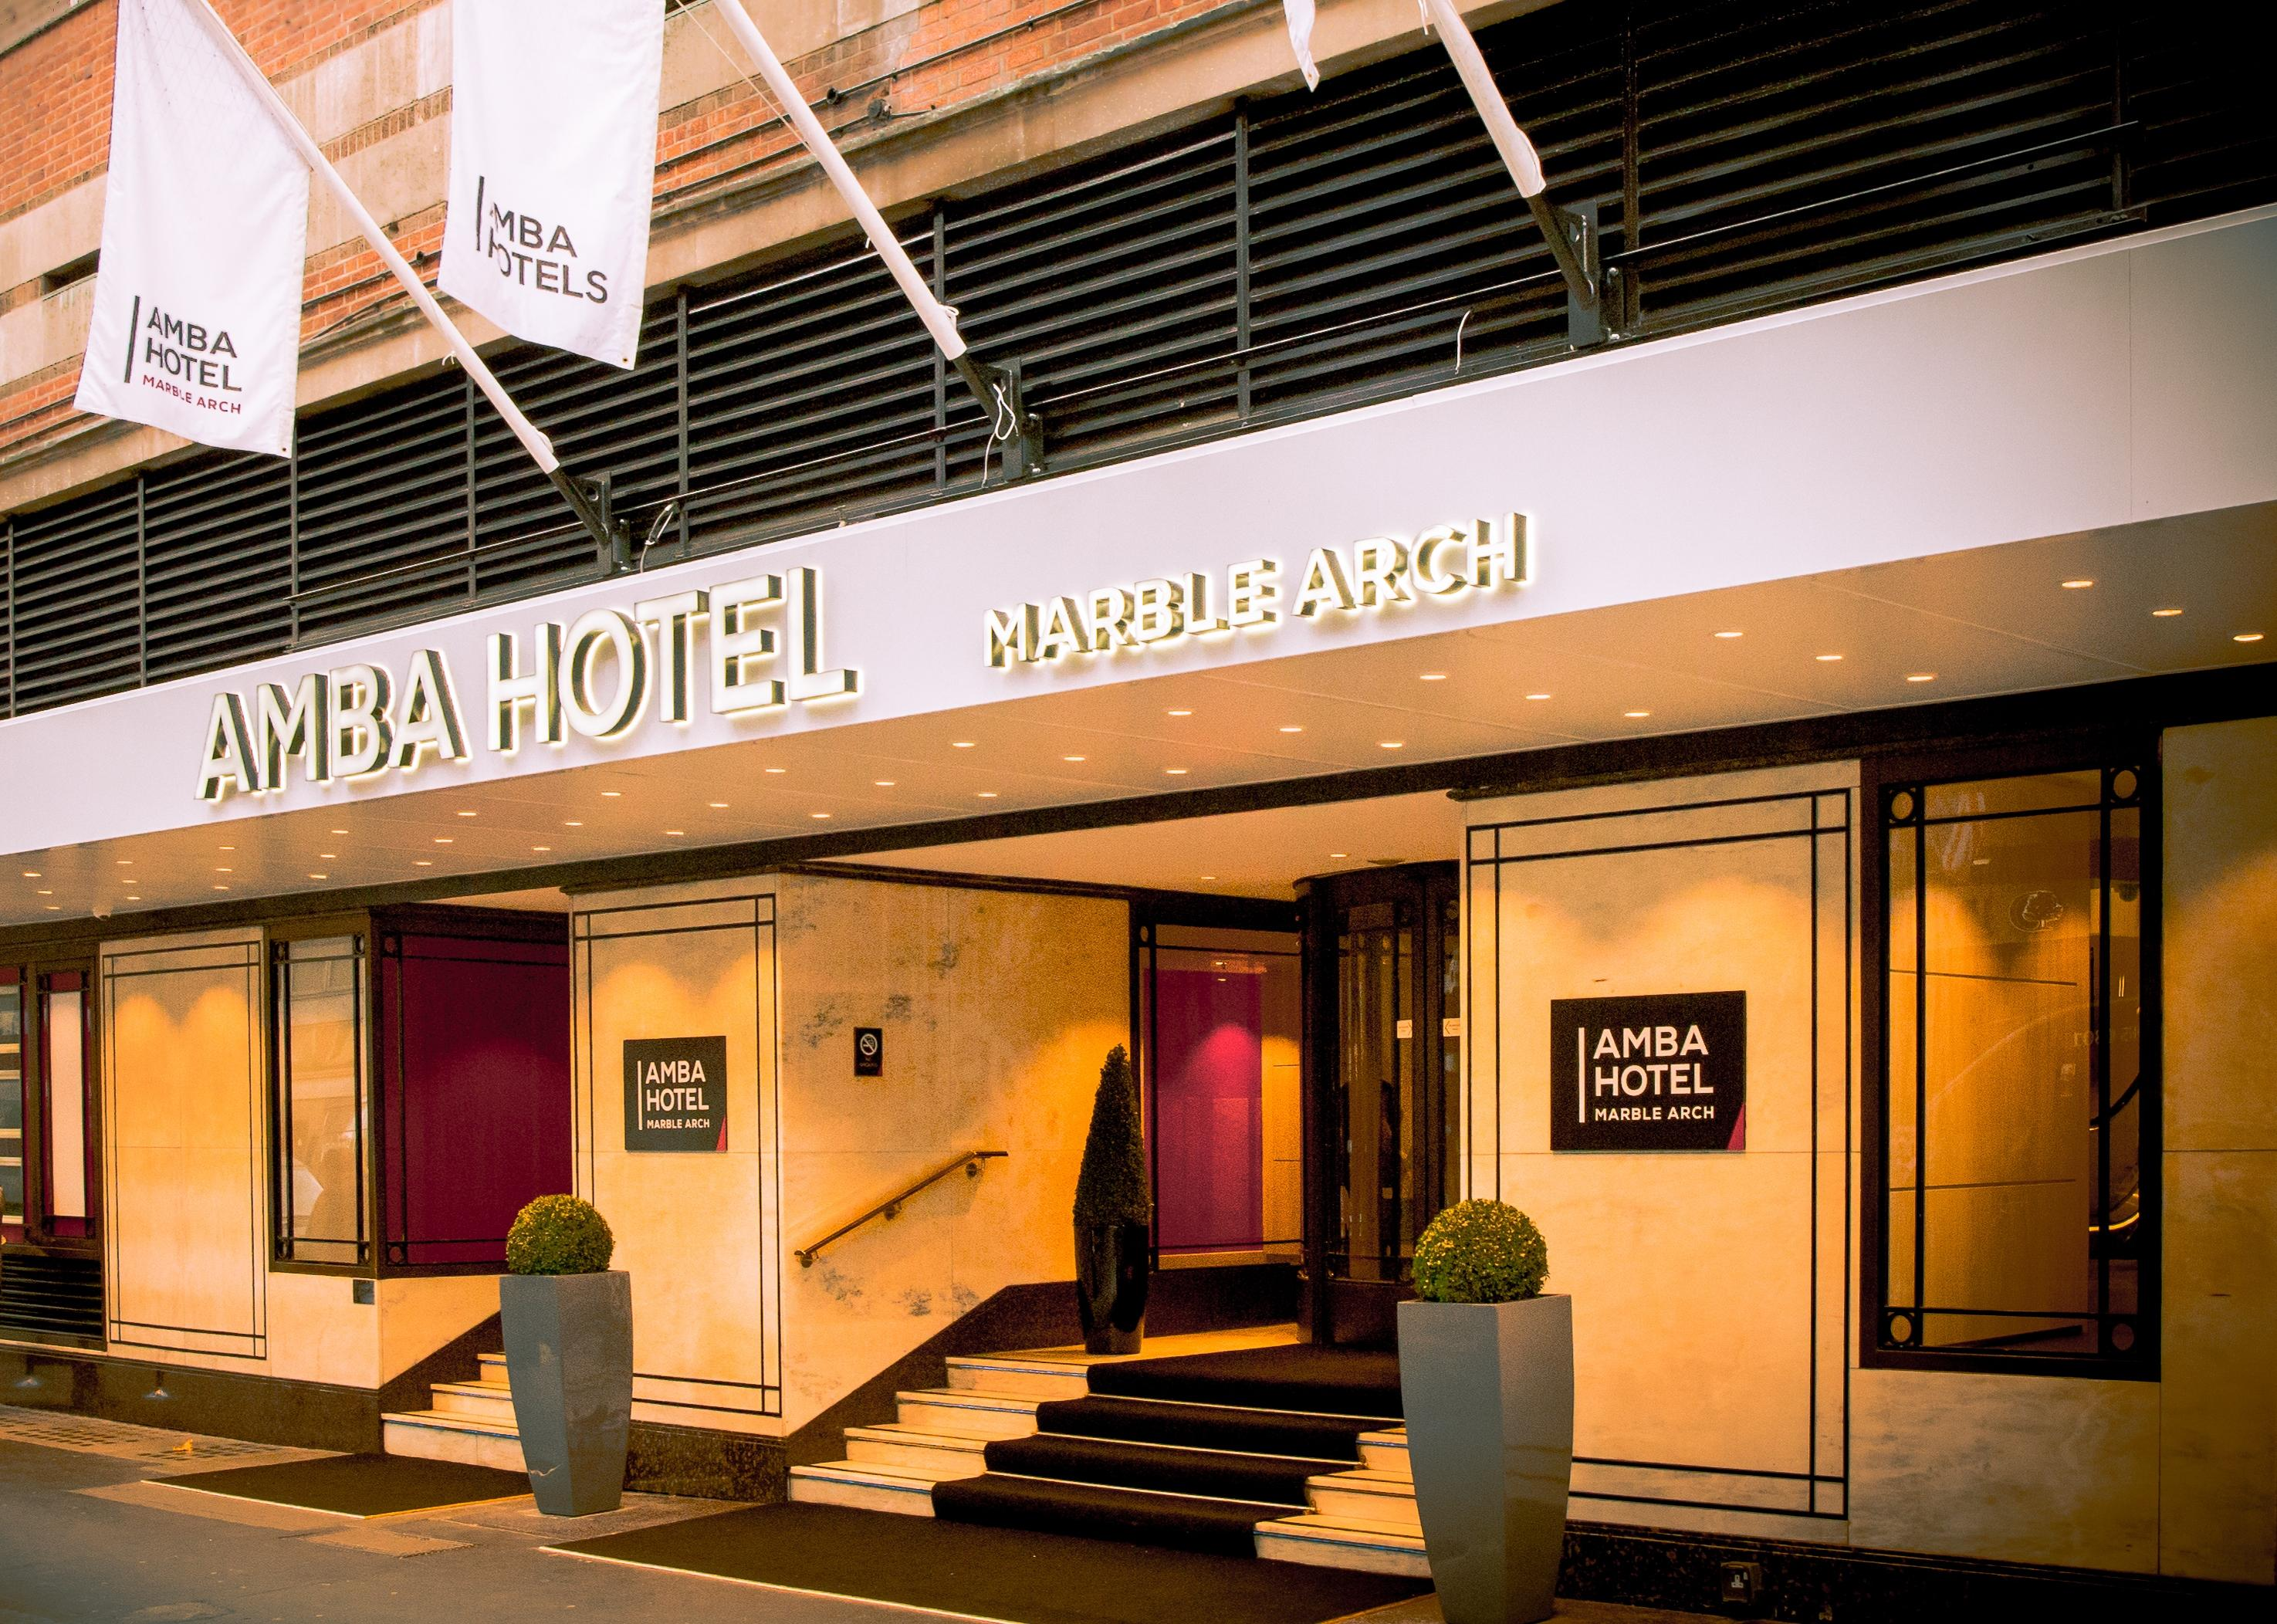 Image of Amba Hotel Marble Arch